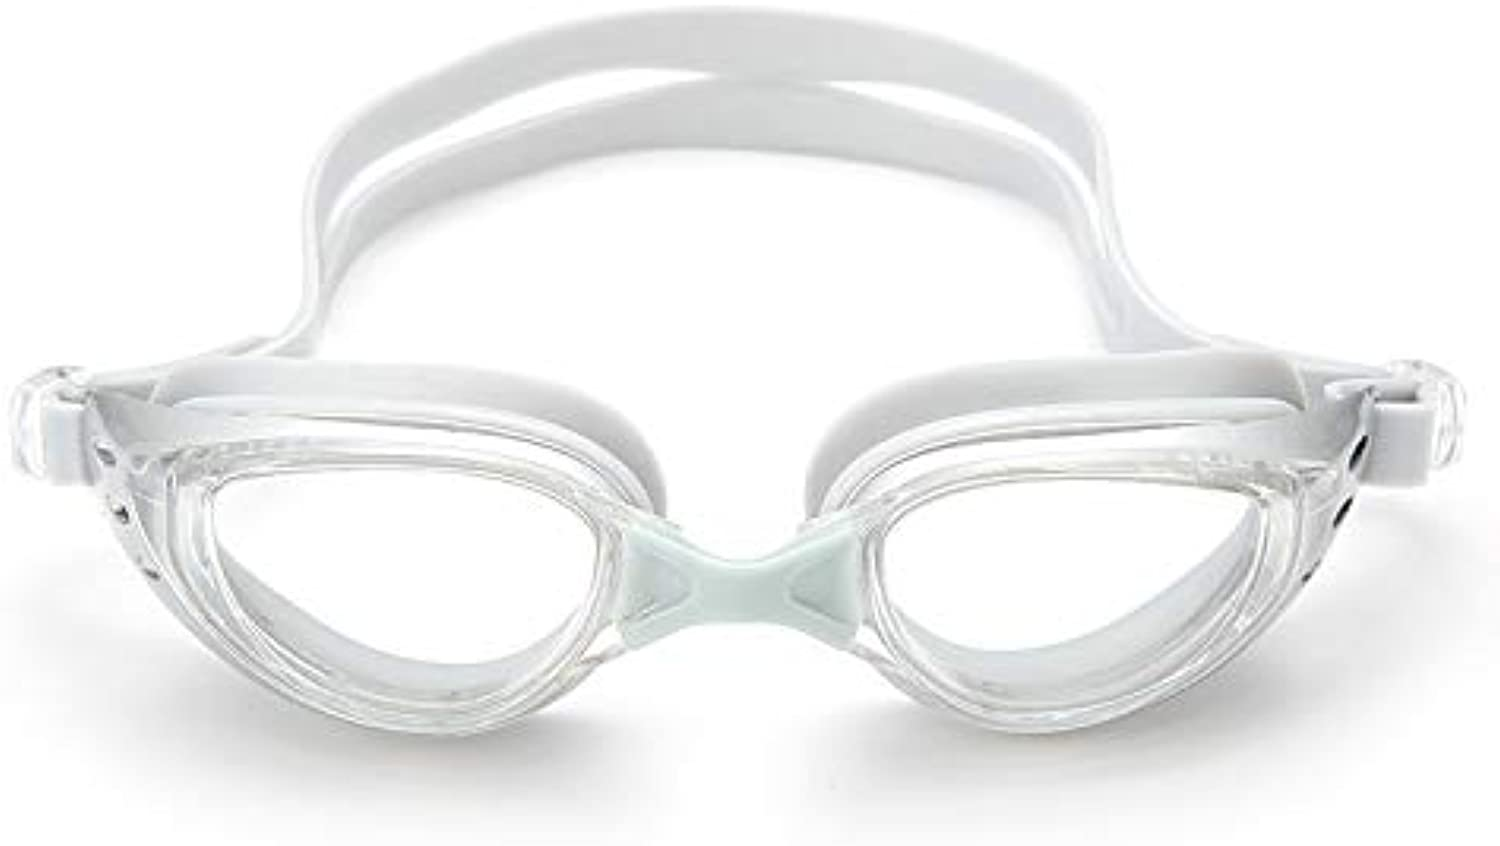 XZP Swimming Glasses, Waterproof AntiFog HD Goggles Large Frame Plating Flat Goggles for Men Women (color   White)